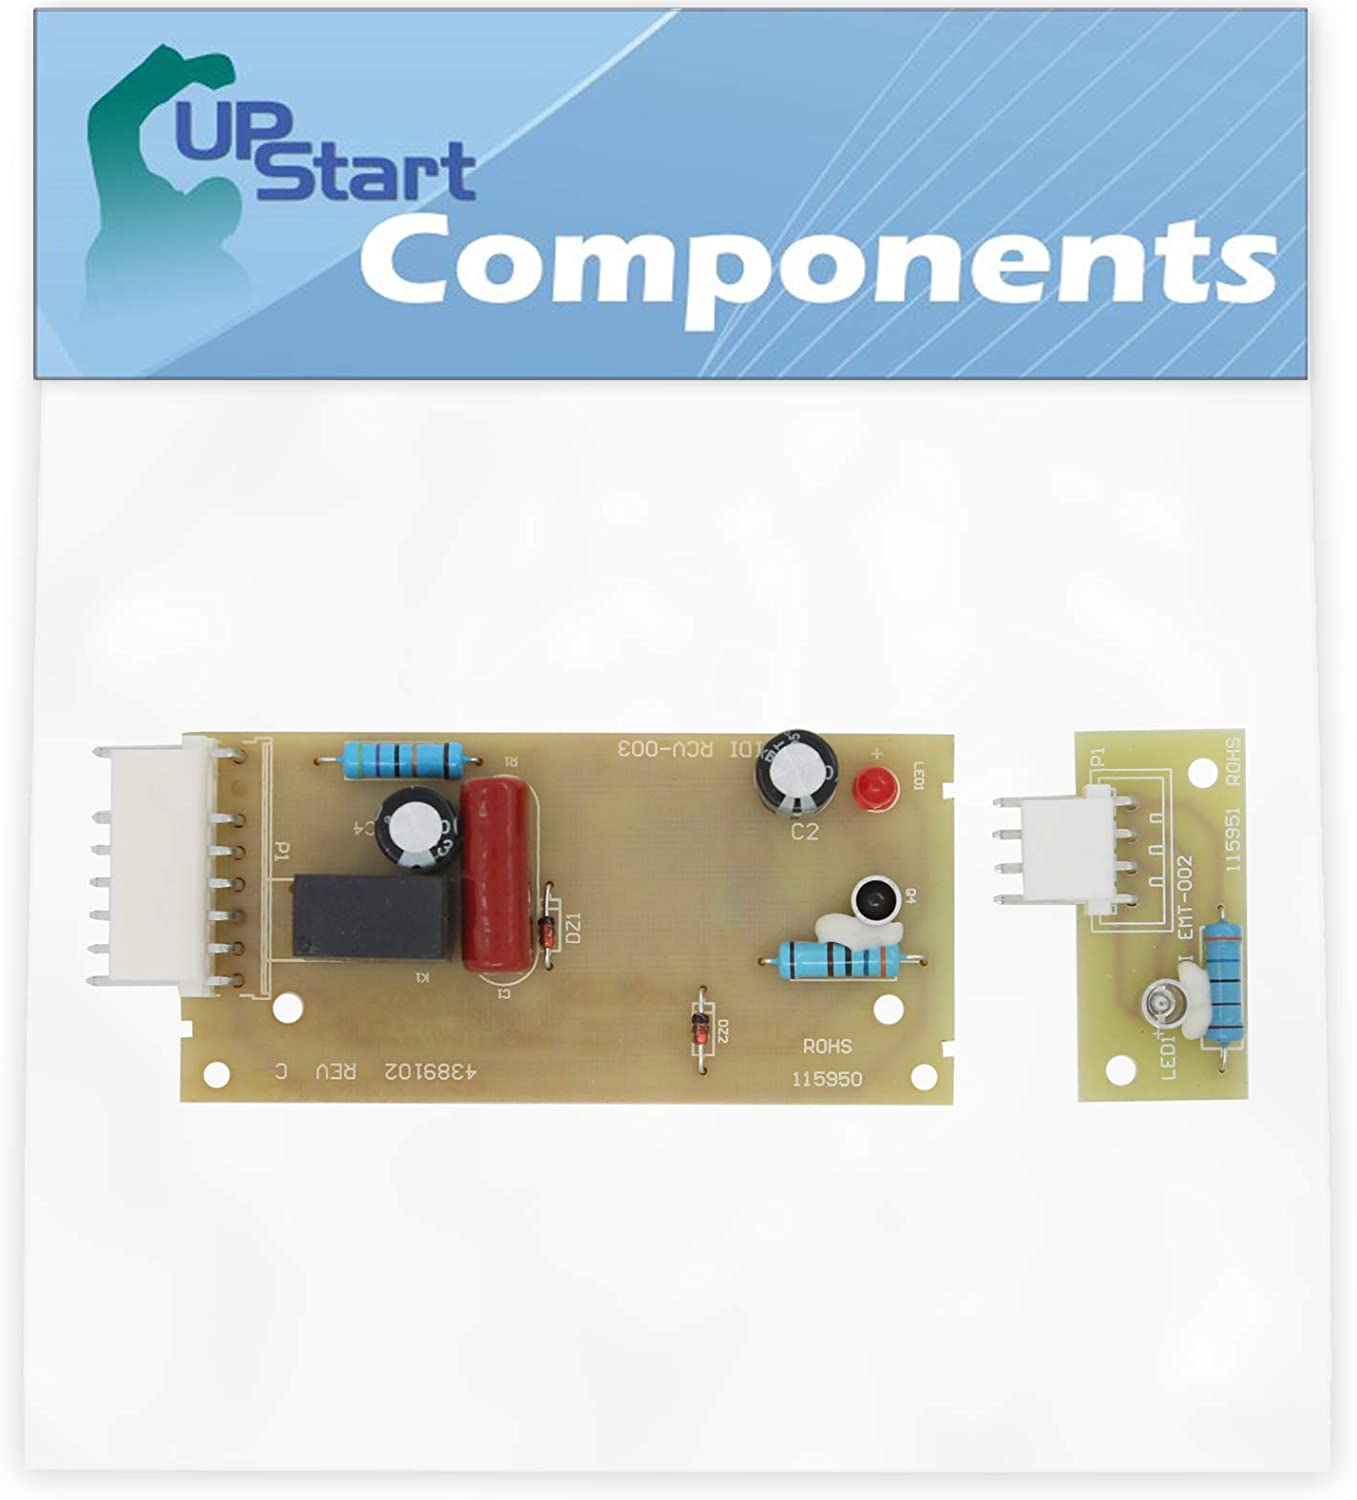 W10757851 Refrigerator Ice Level Control Board Replacement for Kenmore/Sears 10641523500 Refrigerator - Compatible with 4389102 Icemaker Emitter Sensor Control Board - UpStart Components Brand